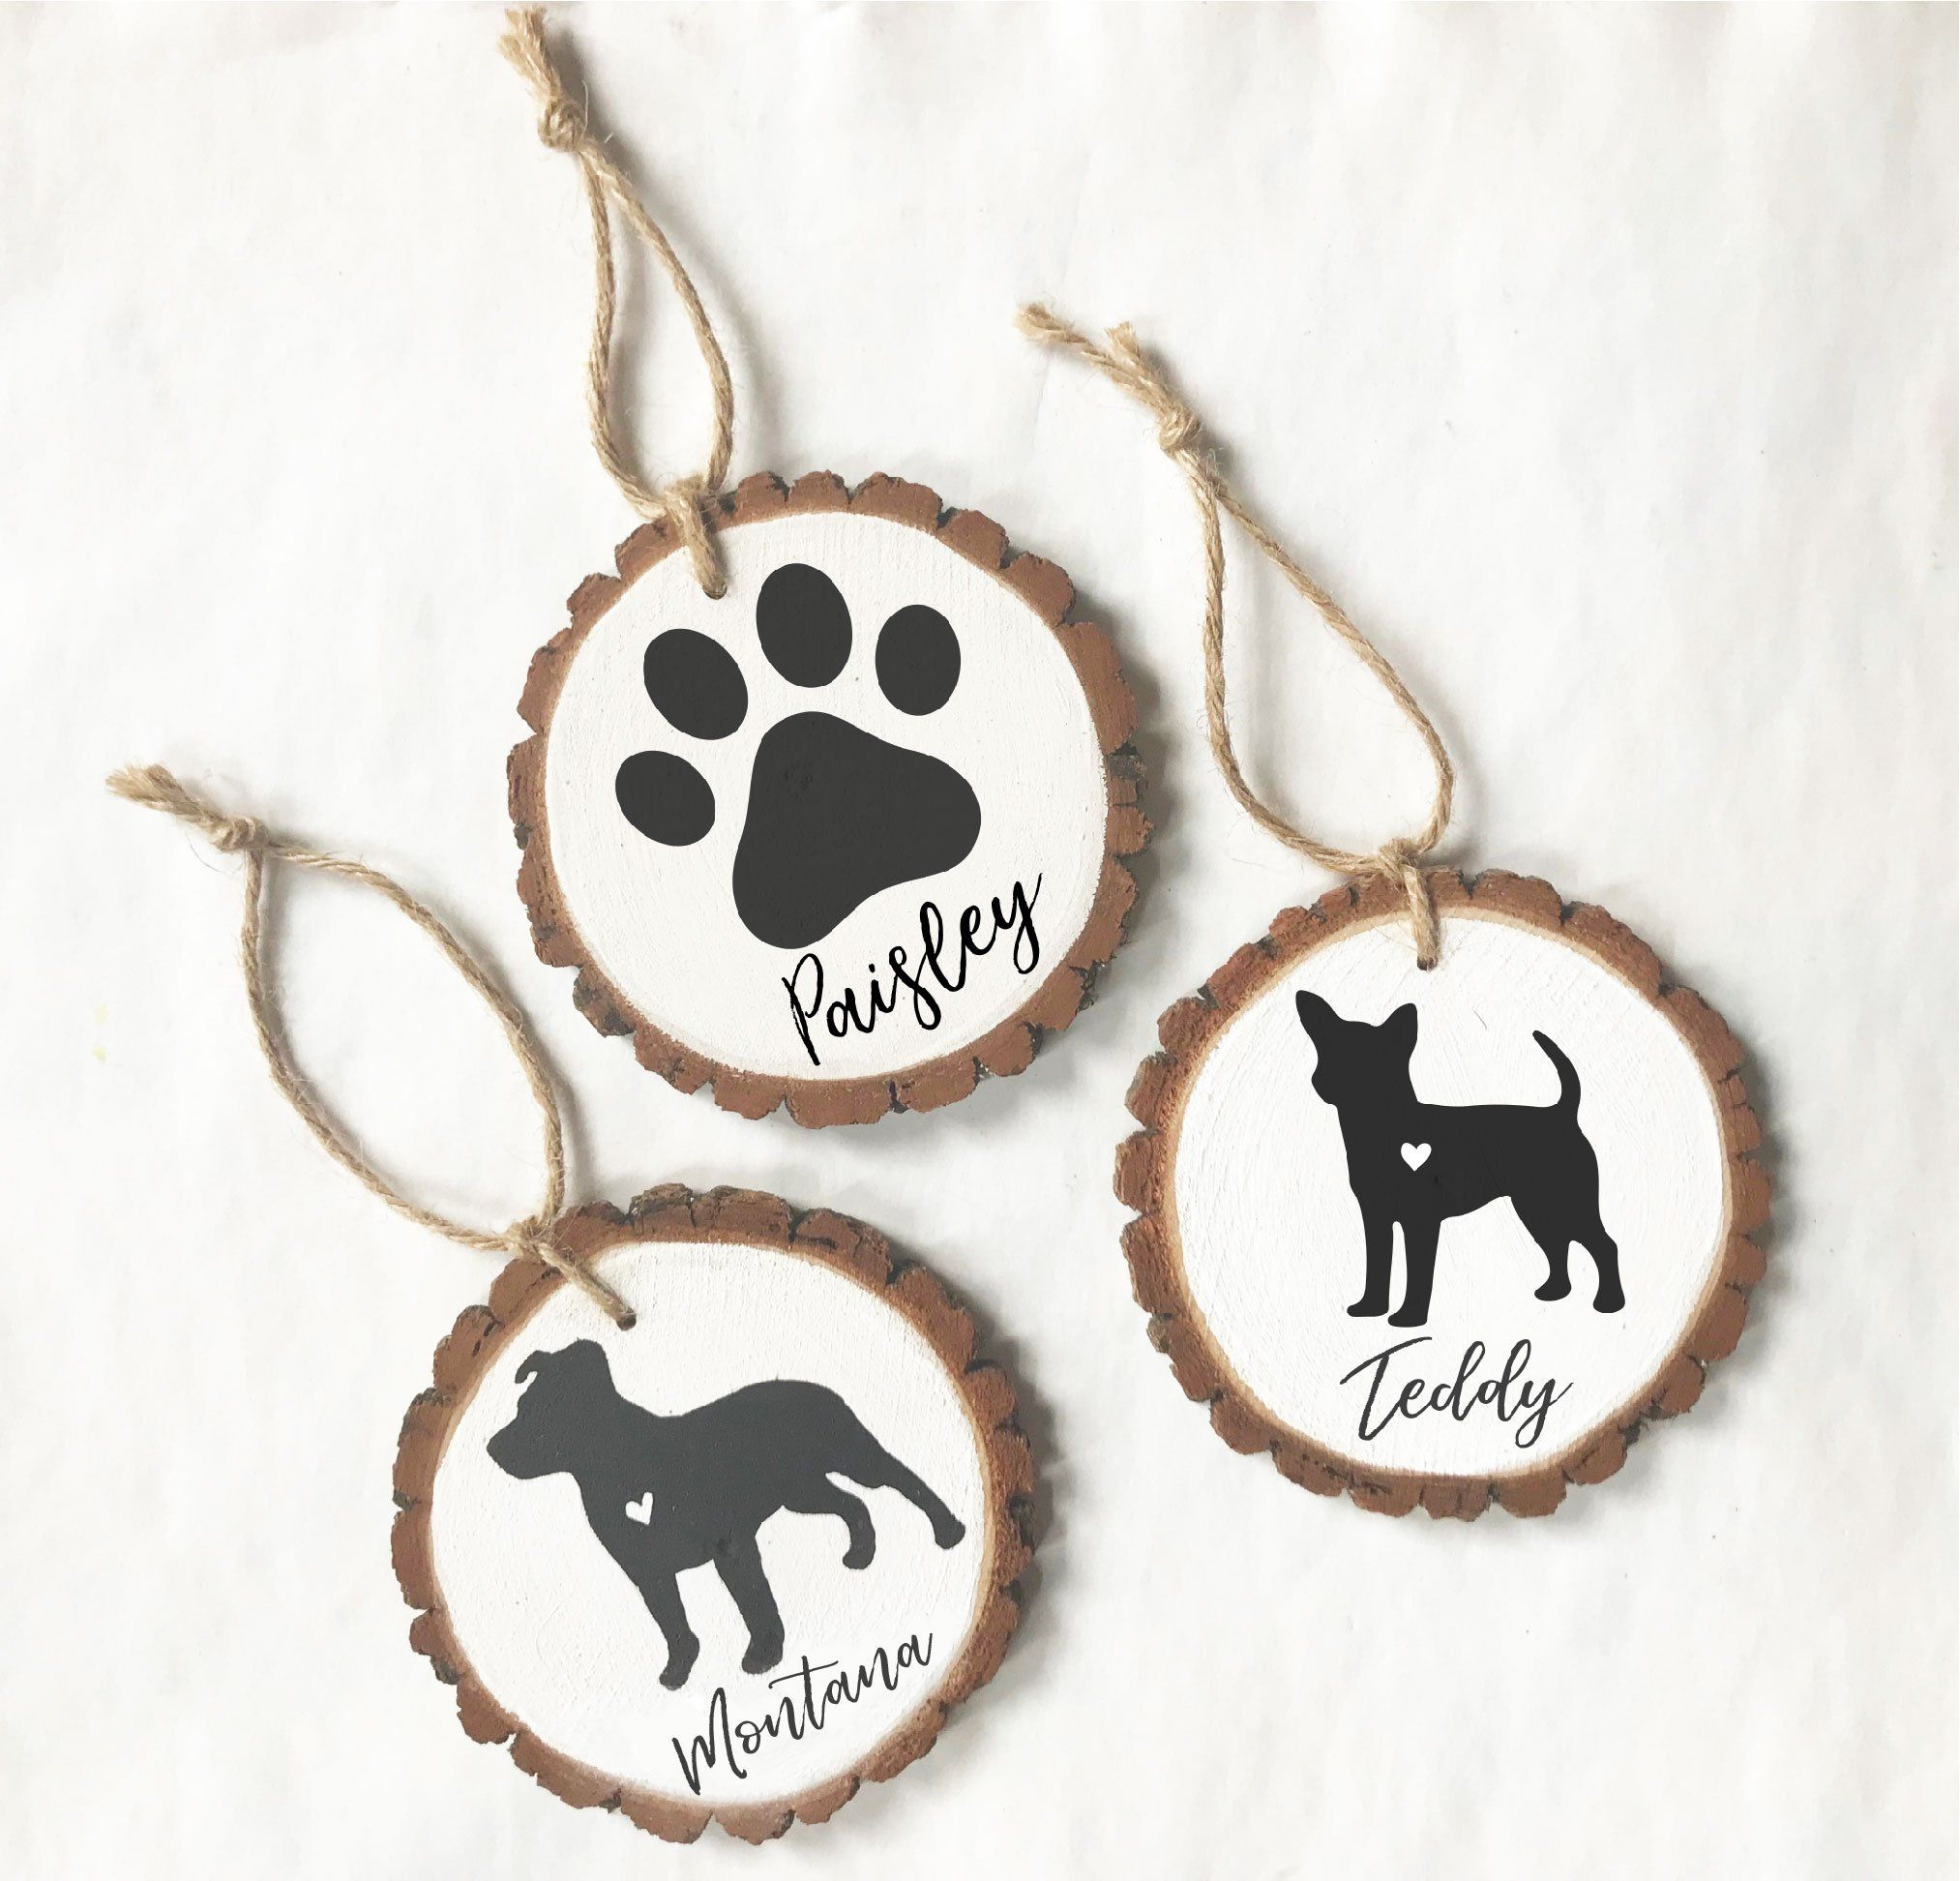 Personalized Pet Wood Slice Ornaments Hand Painted Wood Slice Ornament Wood Christmas Ornaments Handmade Christmas Ornaments